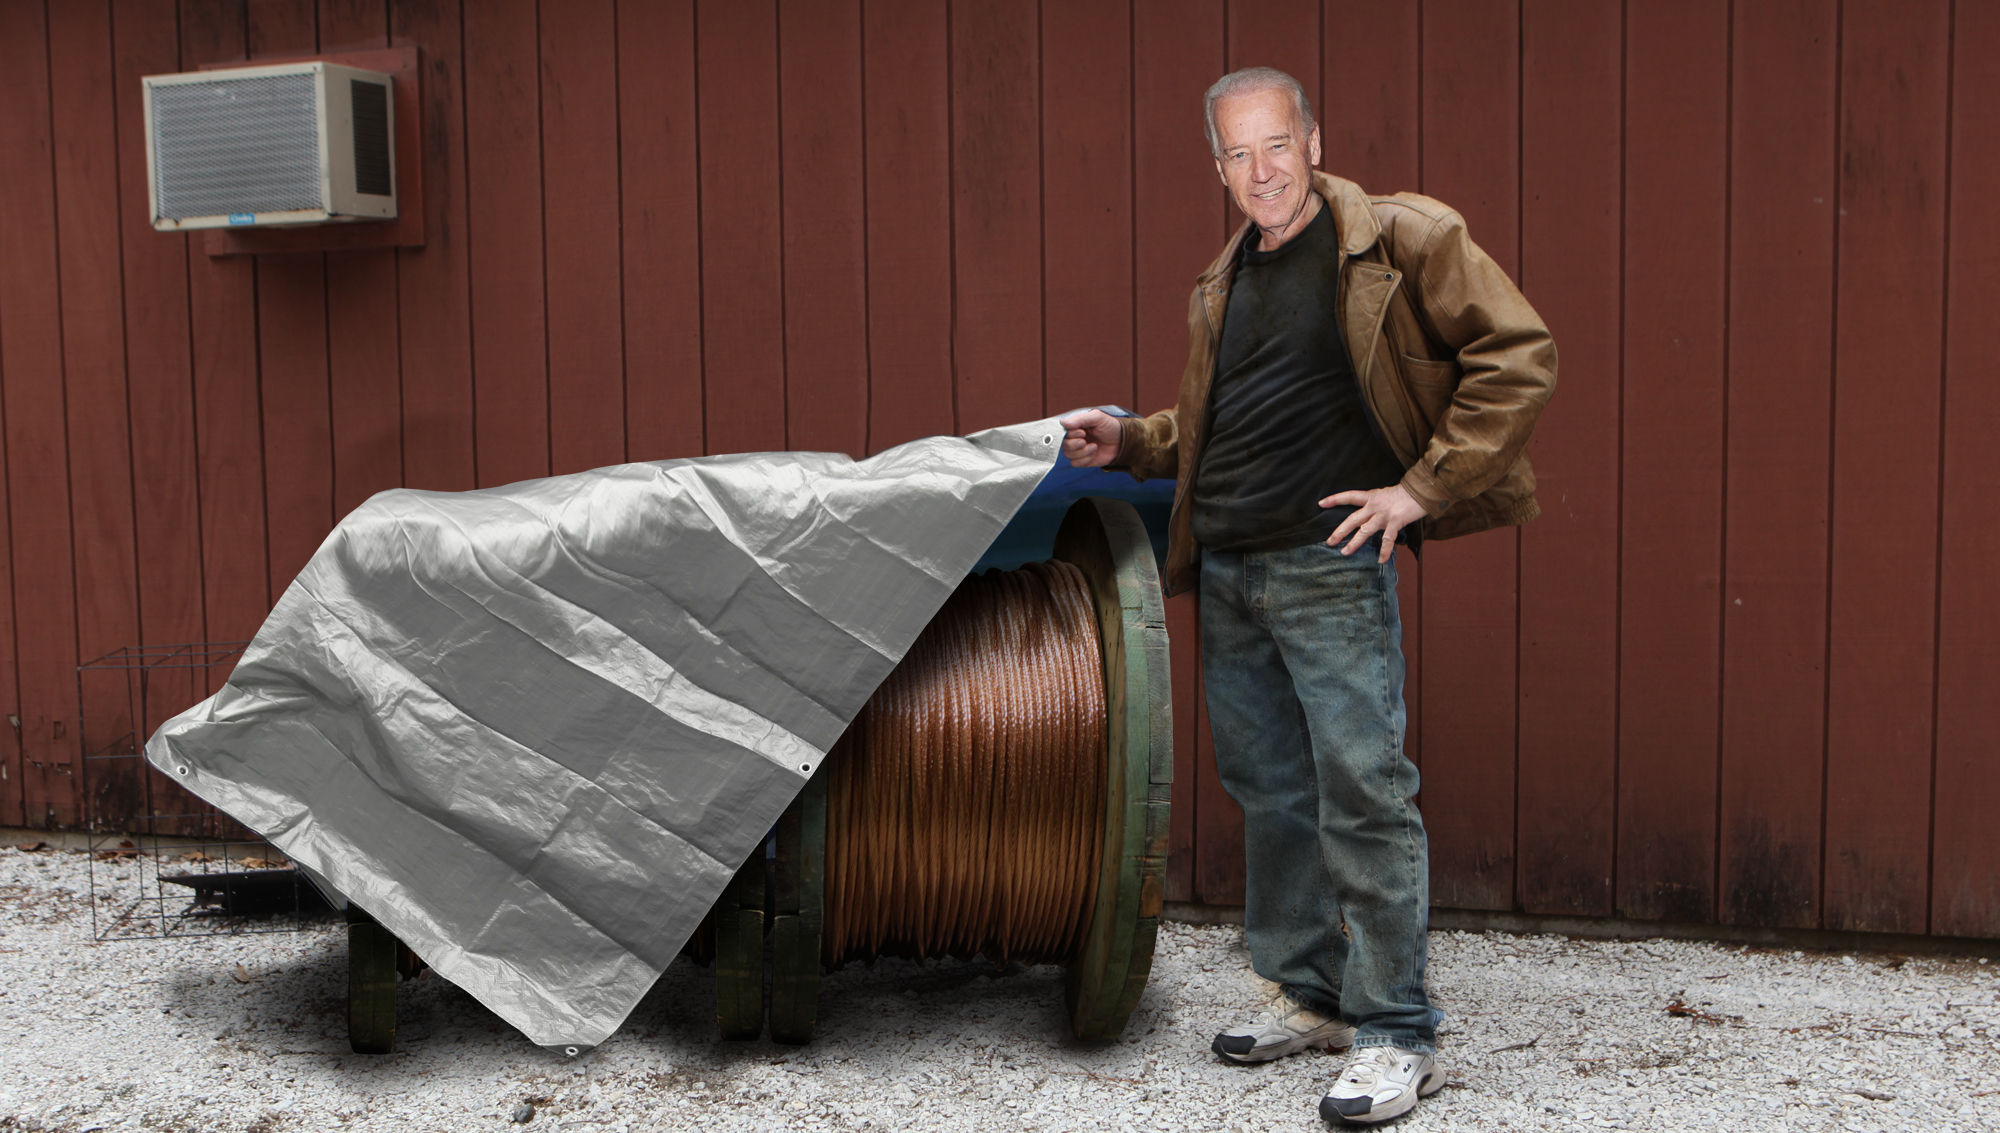 Biden Scores 800 Feet Of Copper Wire                               January 24, 2013